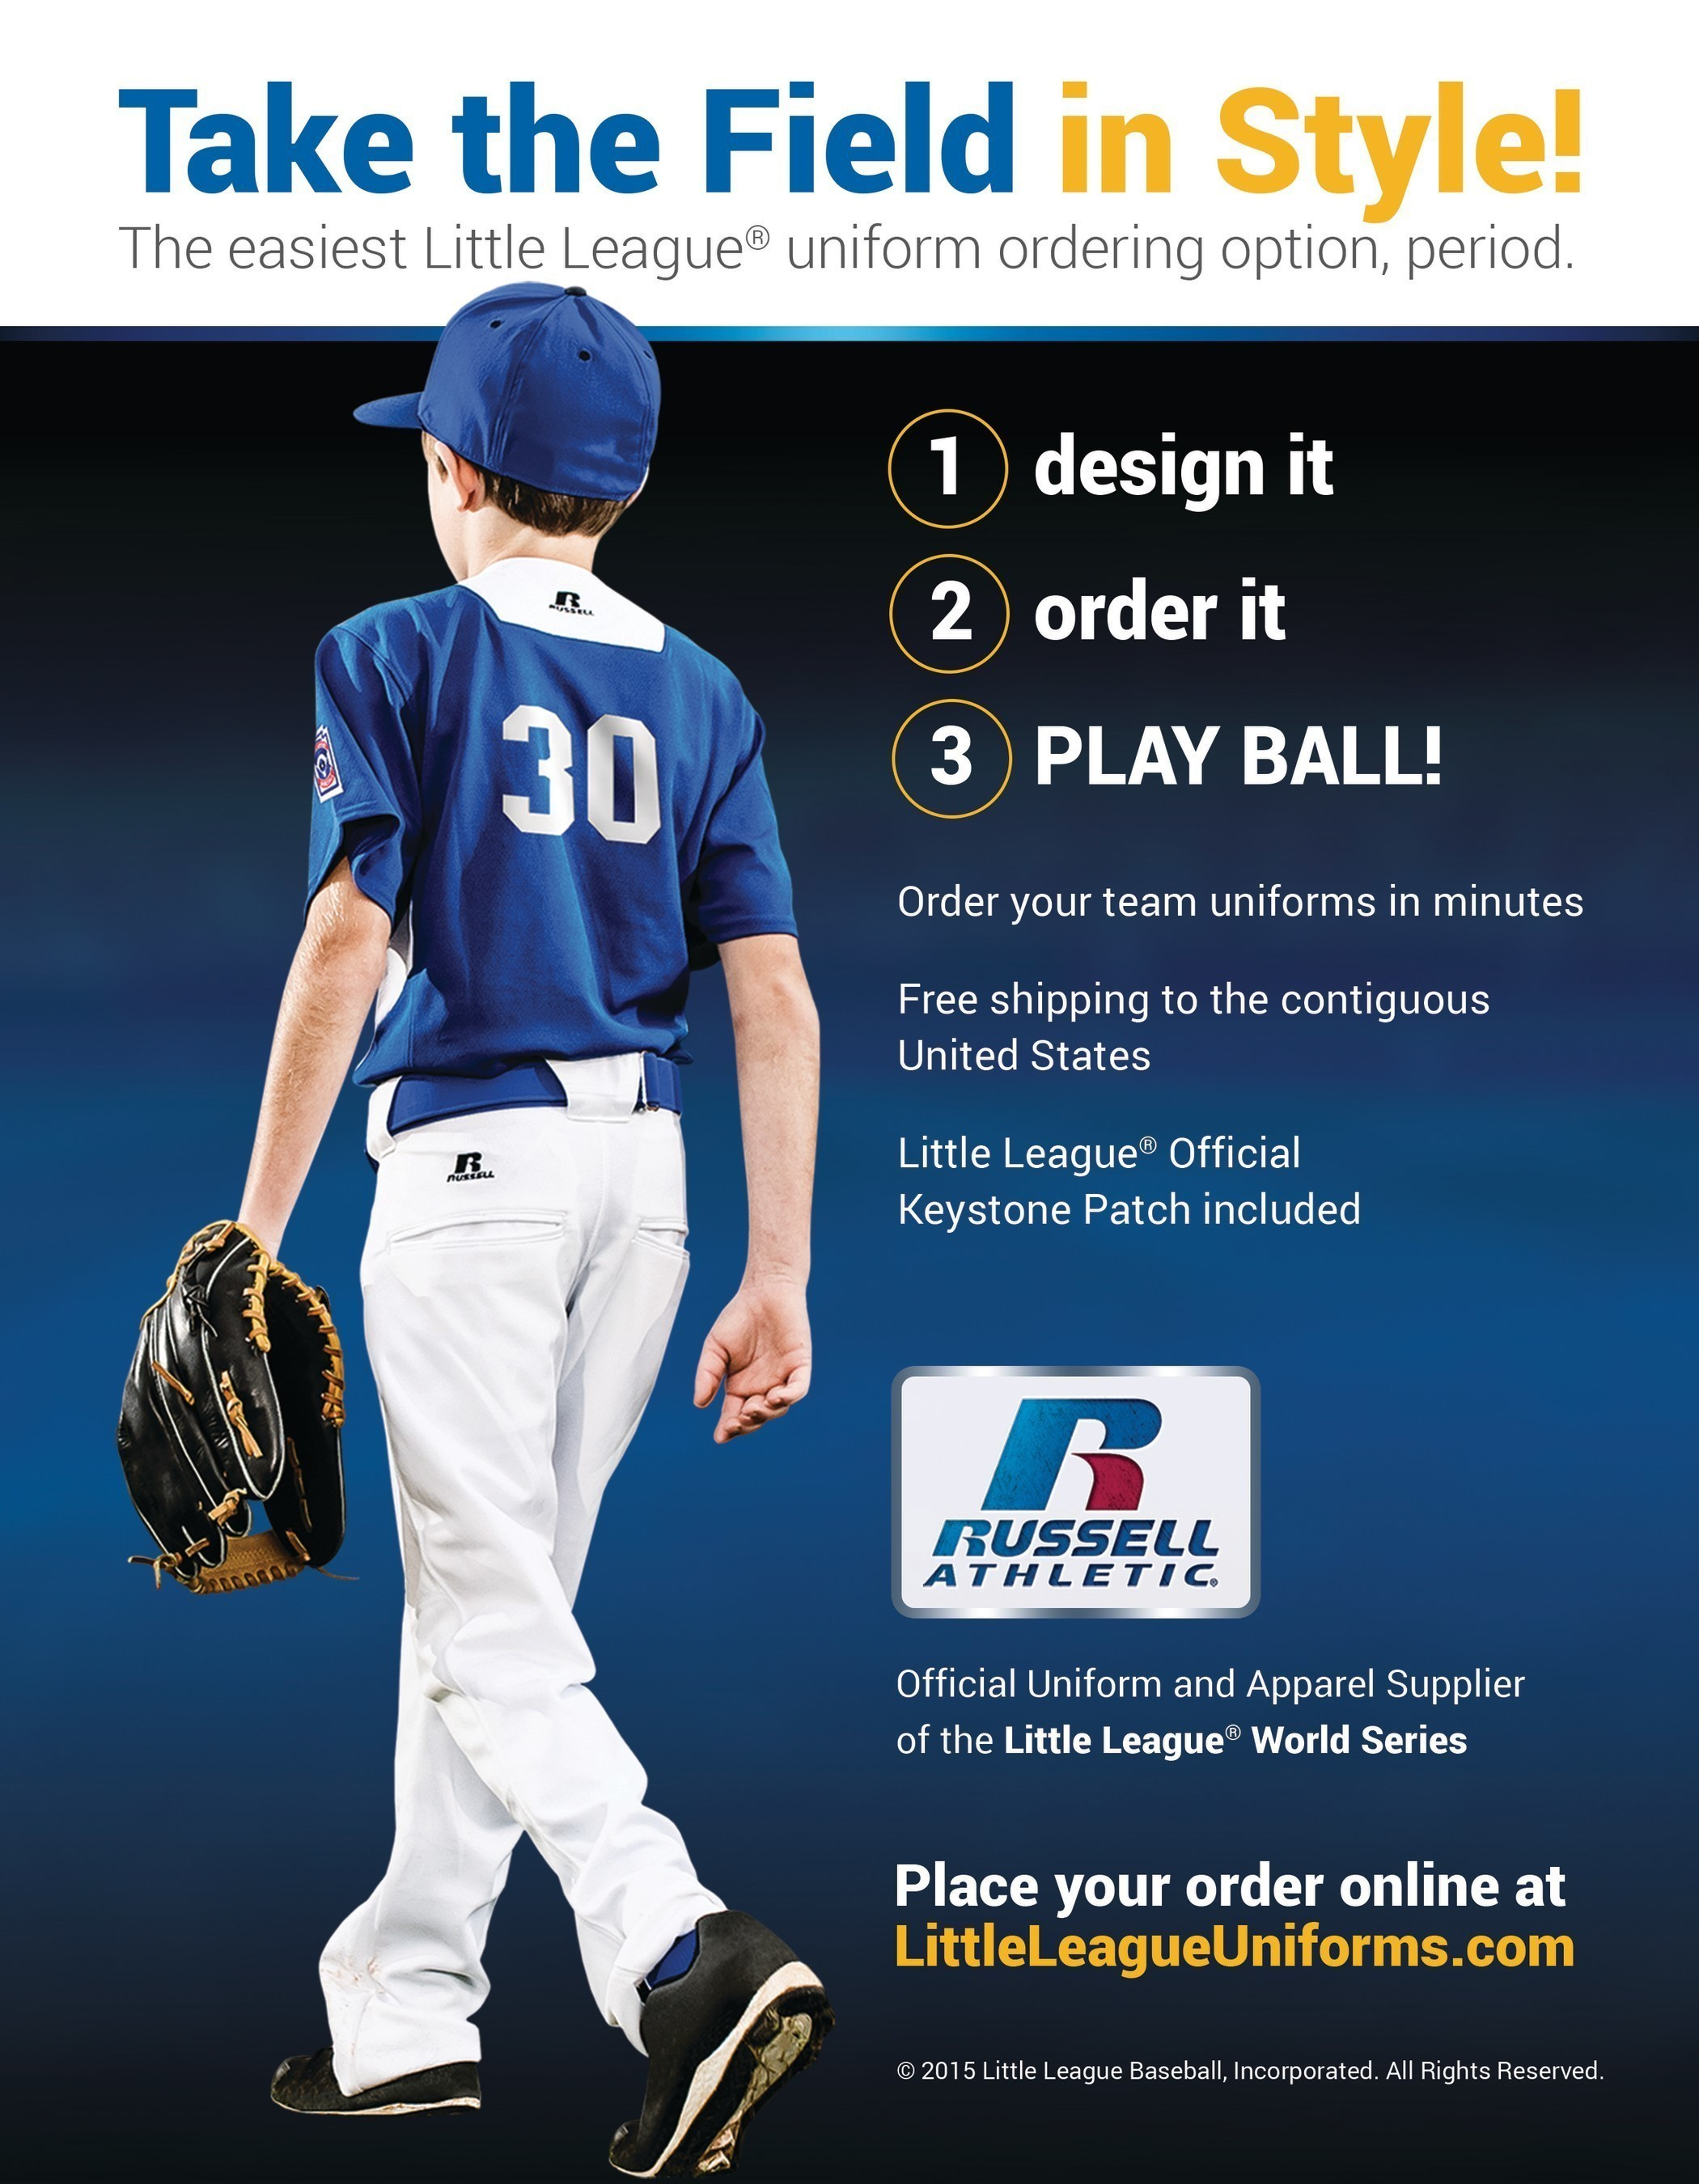 Little League(R) and Russell Athletic(R) today launched LittleLeagueUniforms.com - a website that will allow ...